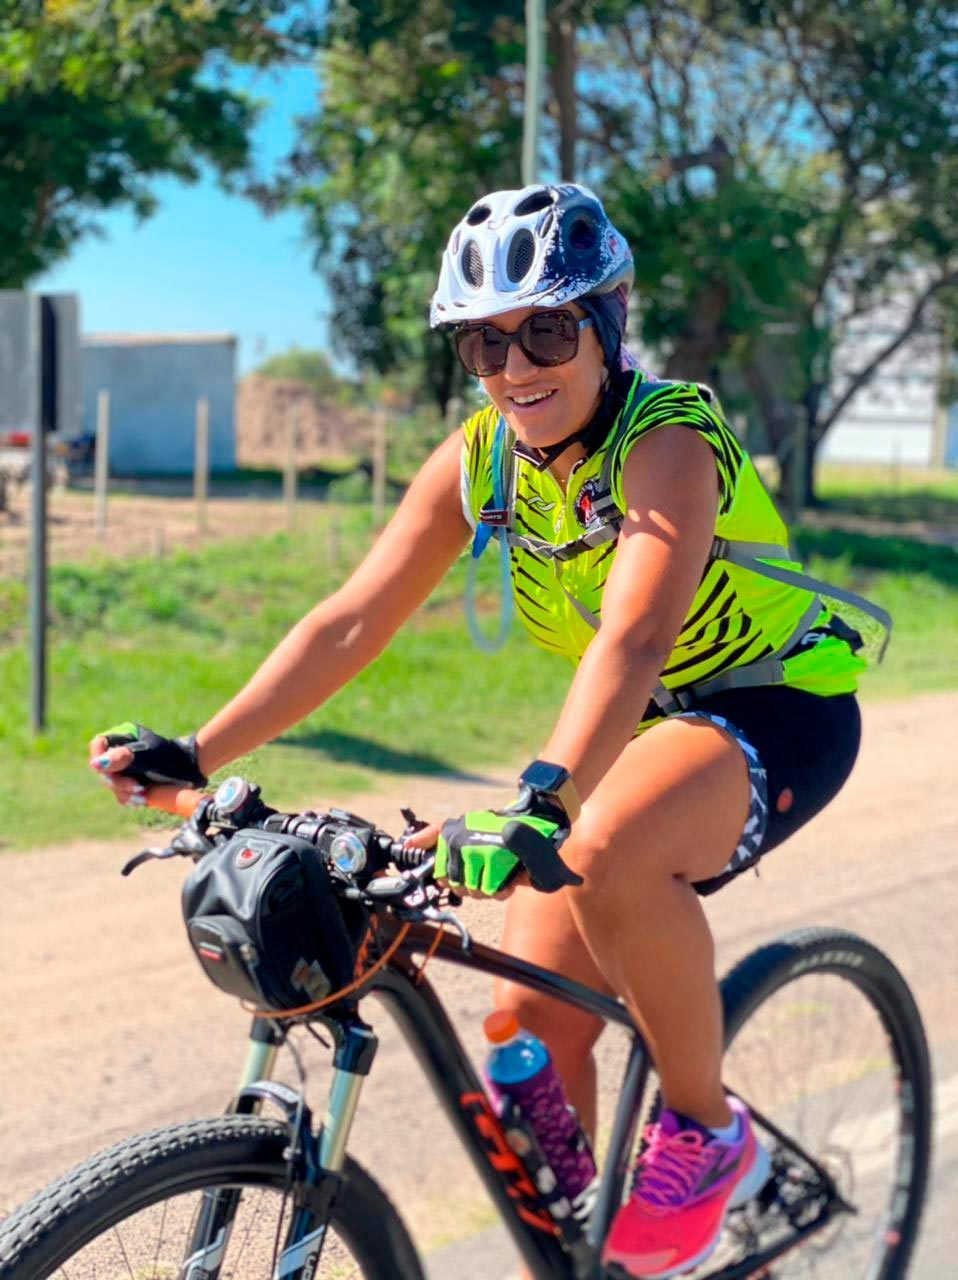 Bicycles--Equipment and supplies, Bicycle helmet, Land vehicle, Tire, Wheel, Shorts